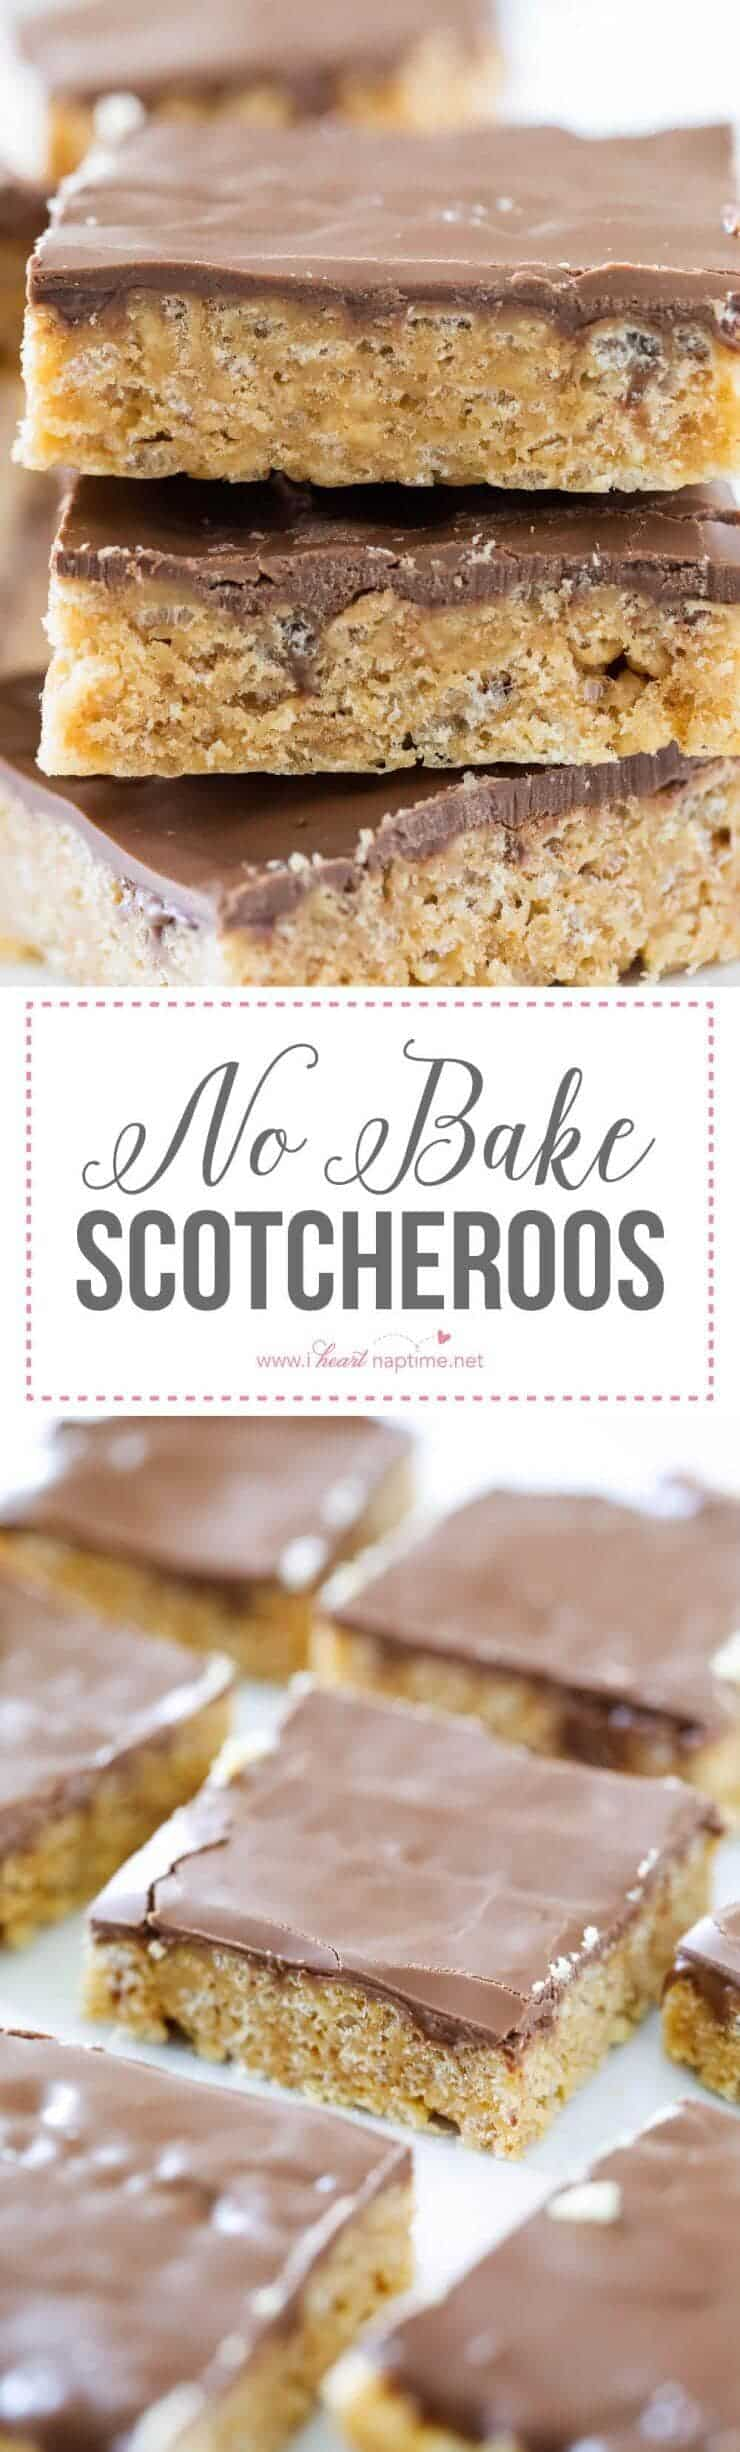 No Bake Scotcheroos ...chewy, crispy peanut butter bars that are topped with a chocolate and butterscotch ganache.